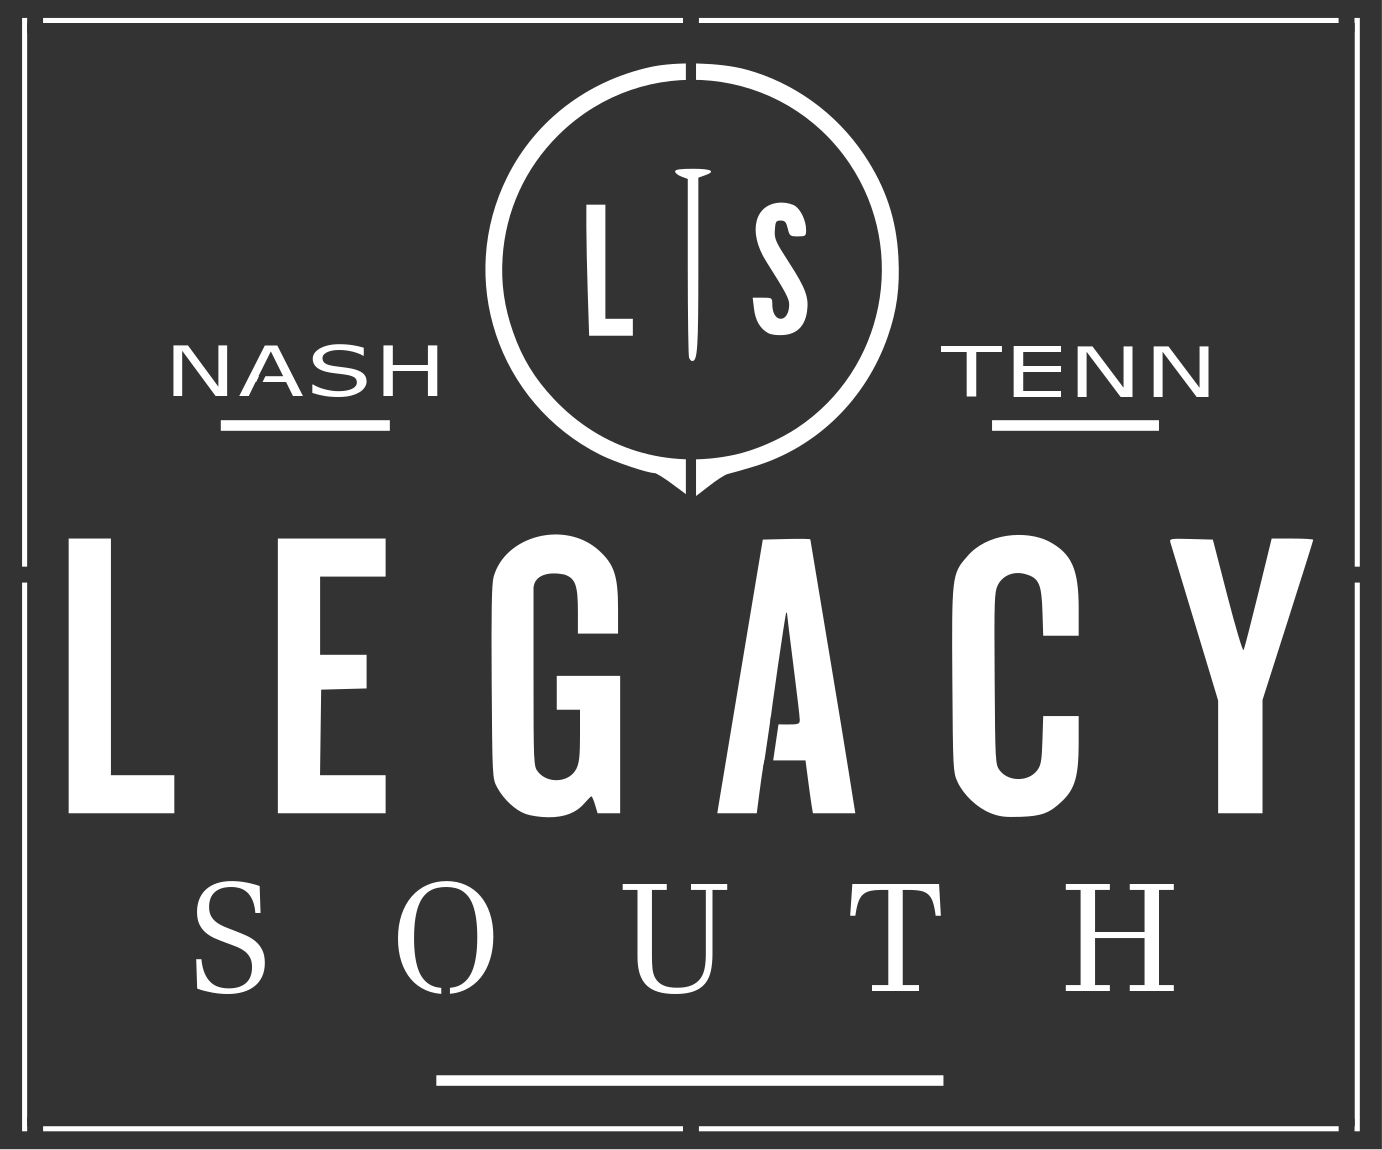 Custom Listing for Legacy South